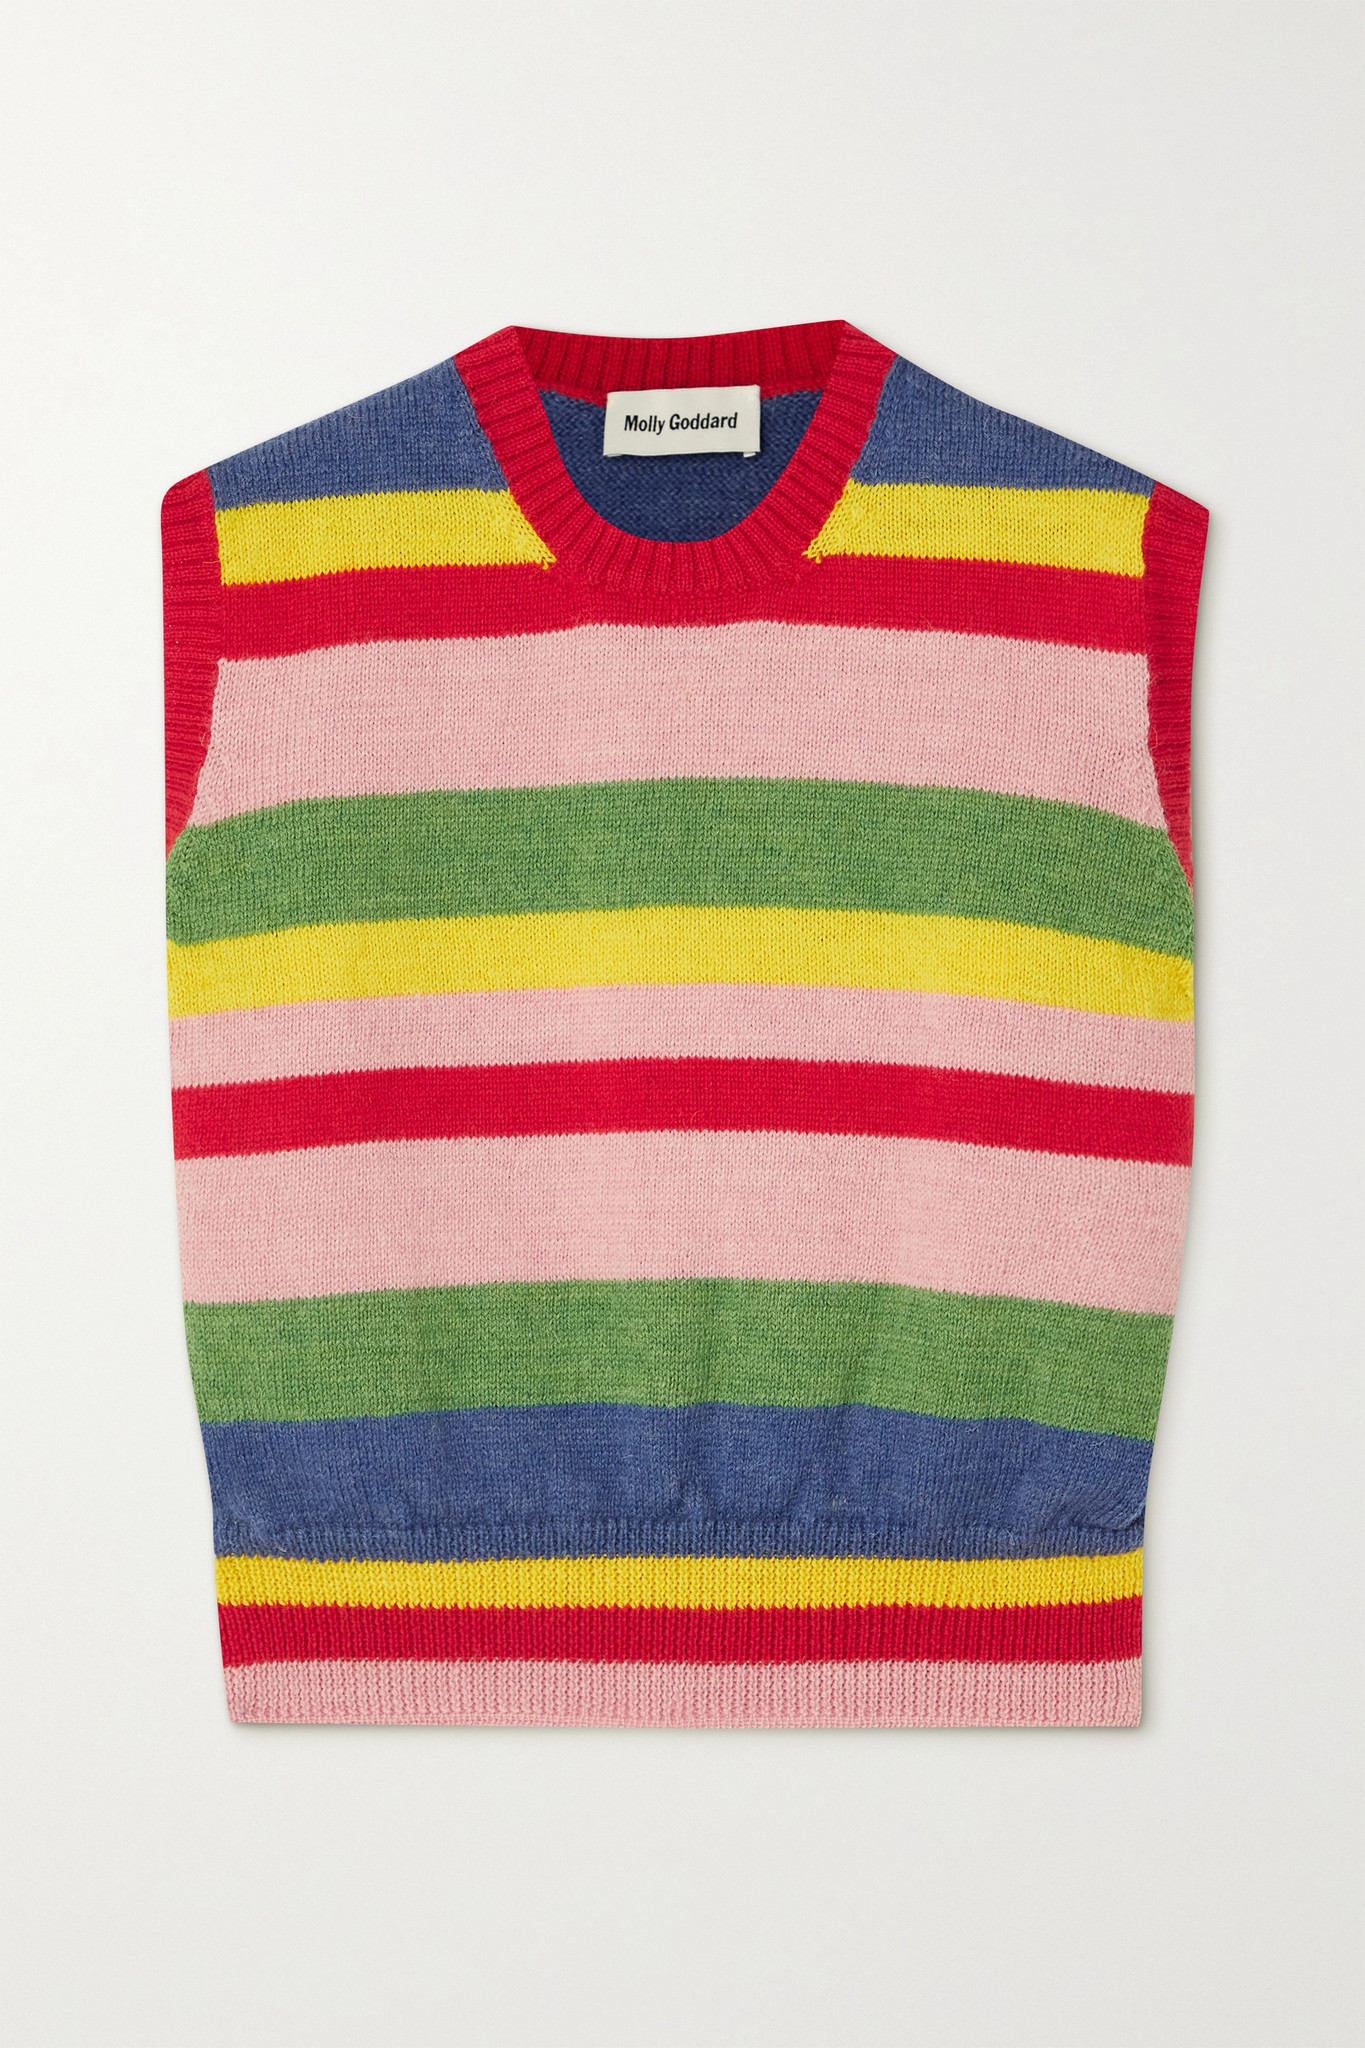 MOLLY GODDARD - Blair Striped Wool Vest - Red - small